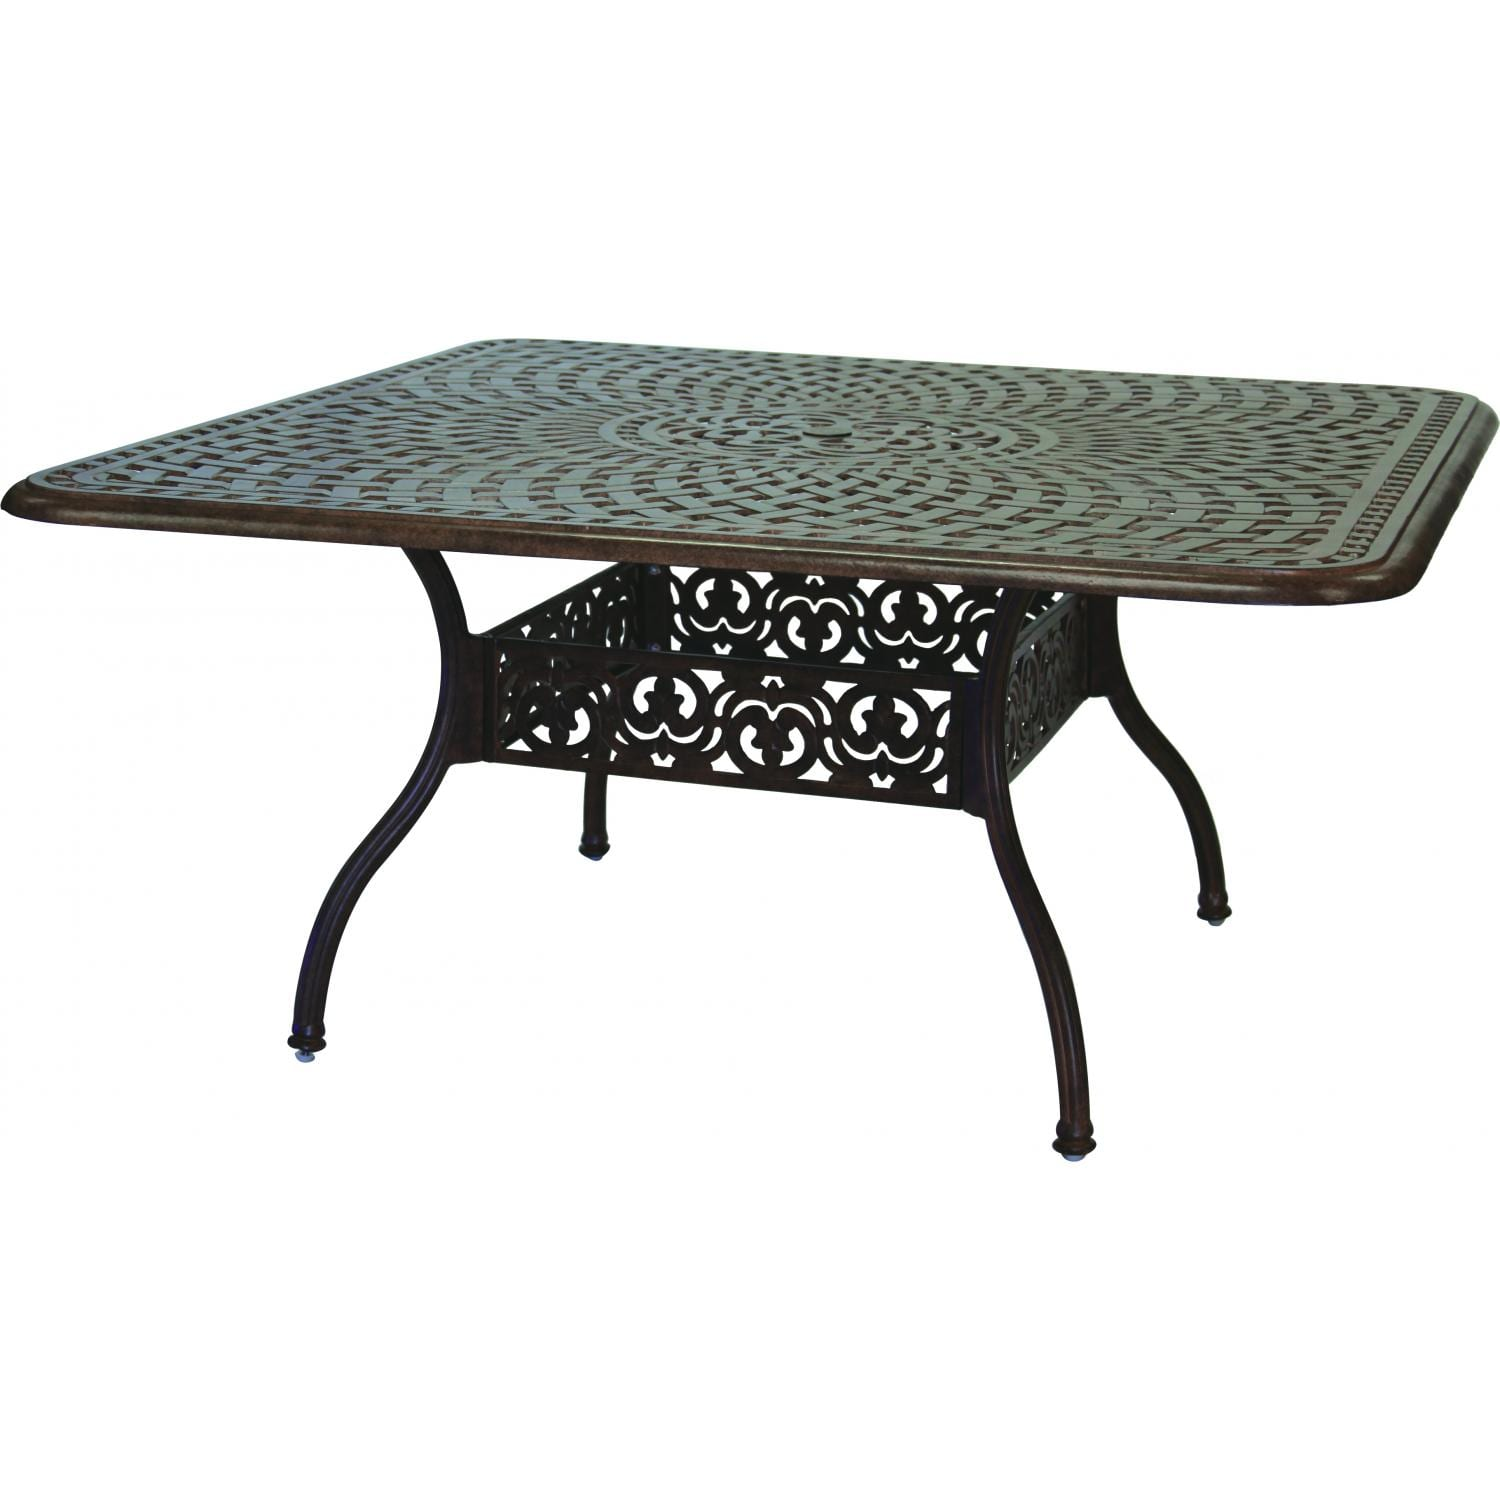 Darlee Series 60 60-Inch Cast Aluminum Patio Dining Table